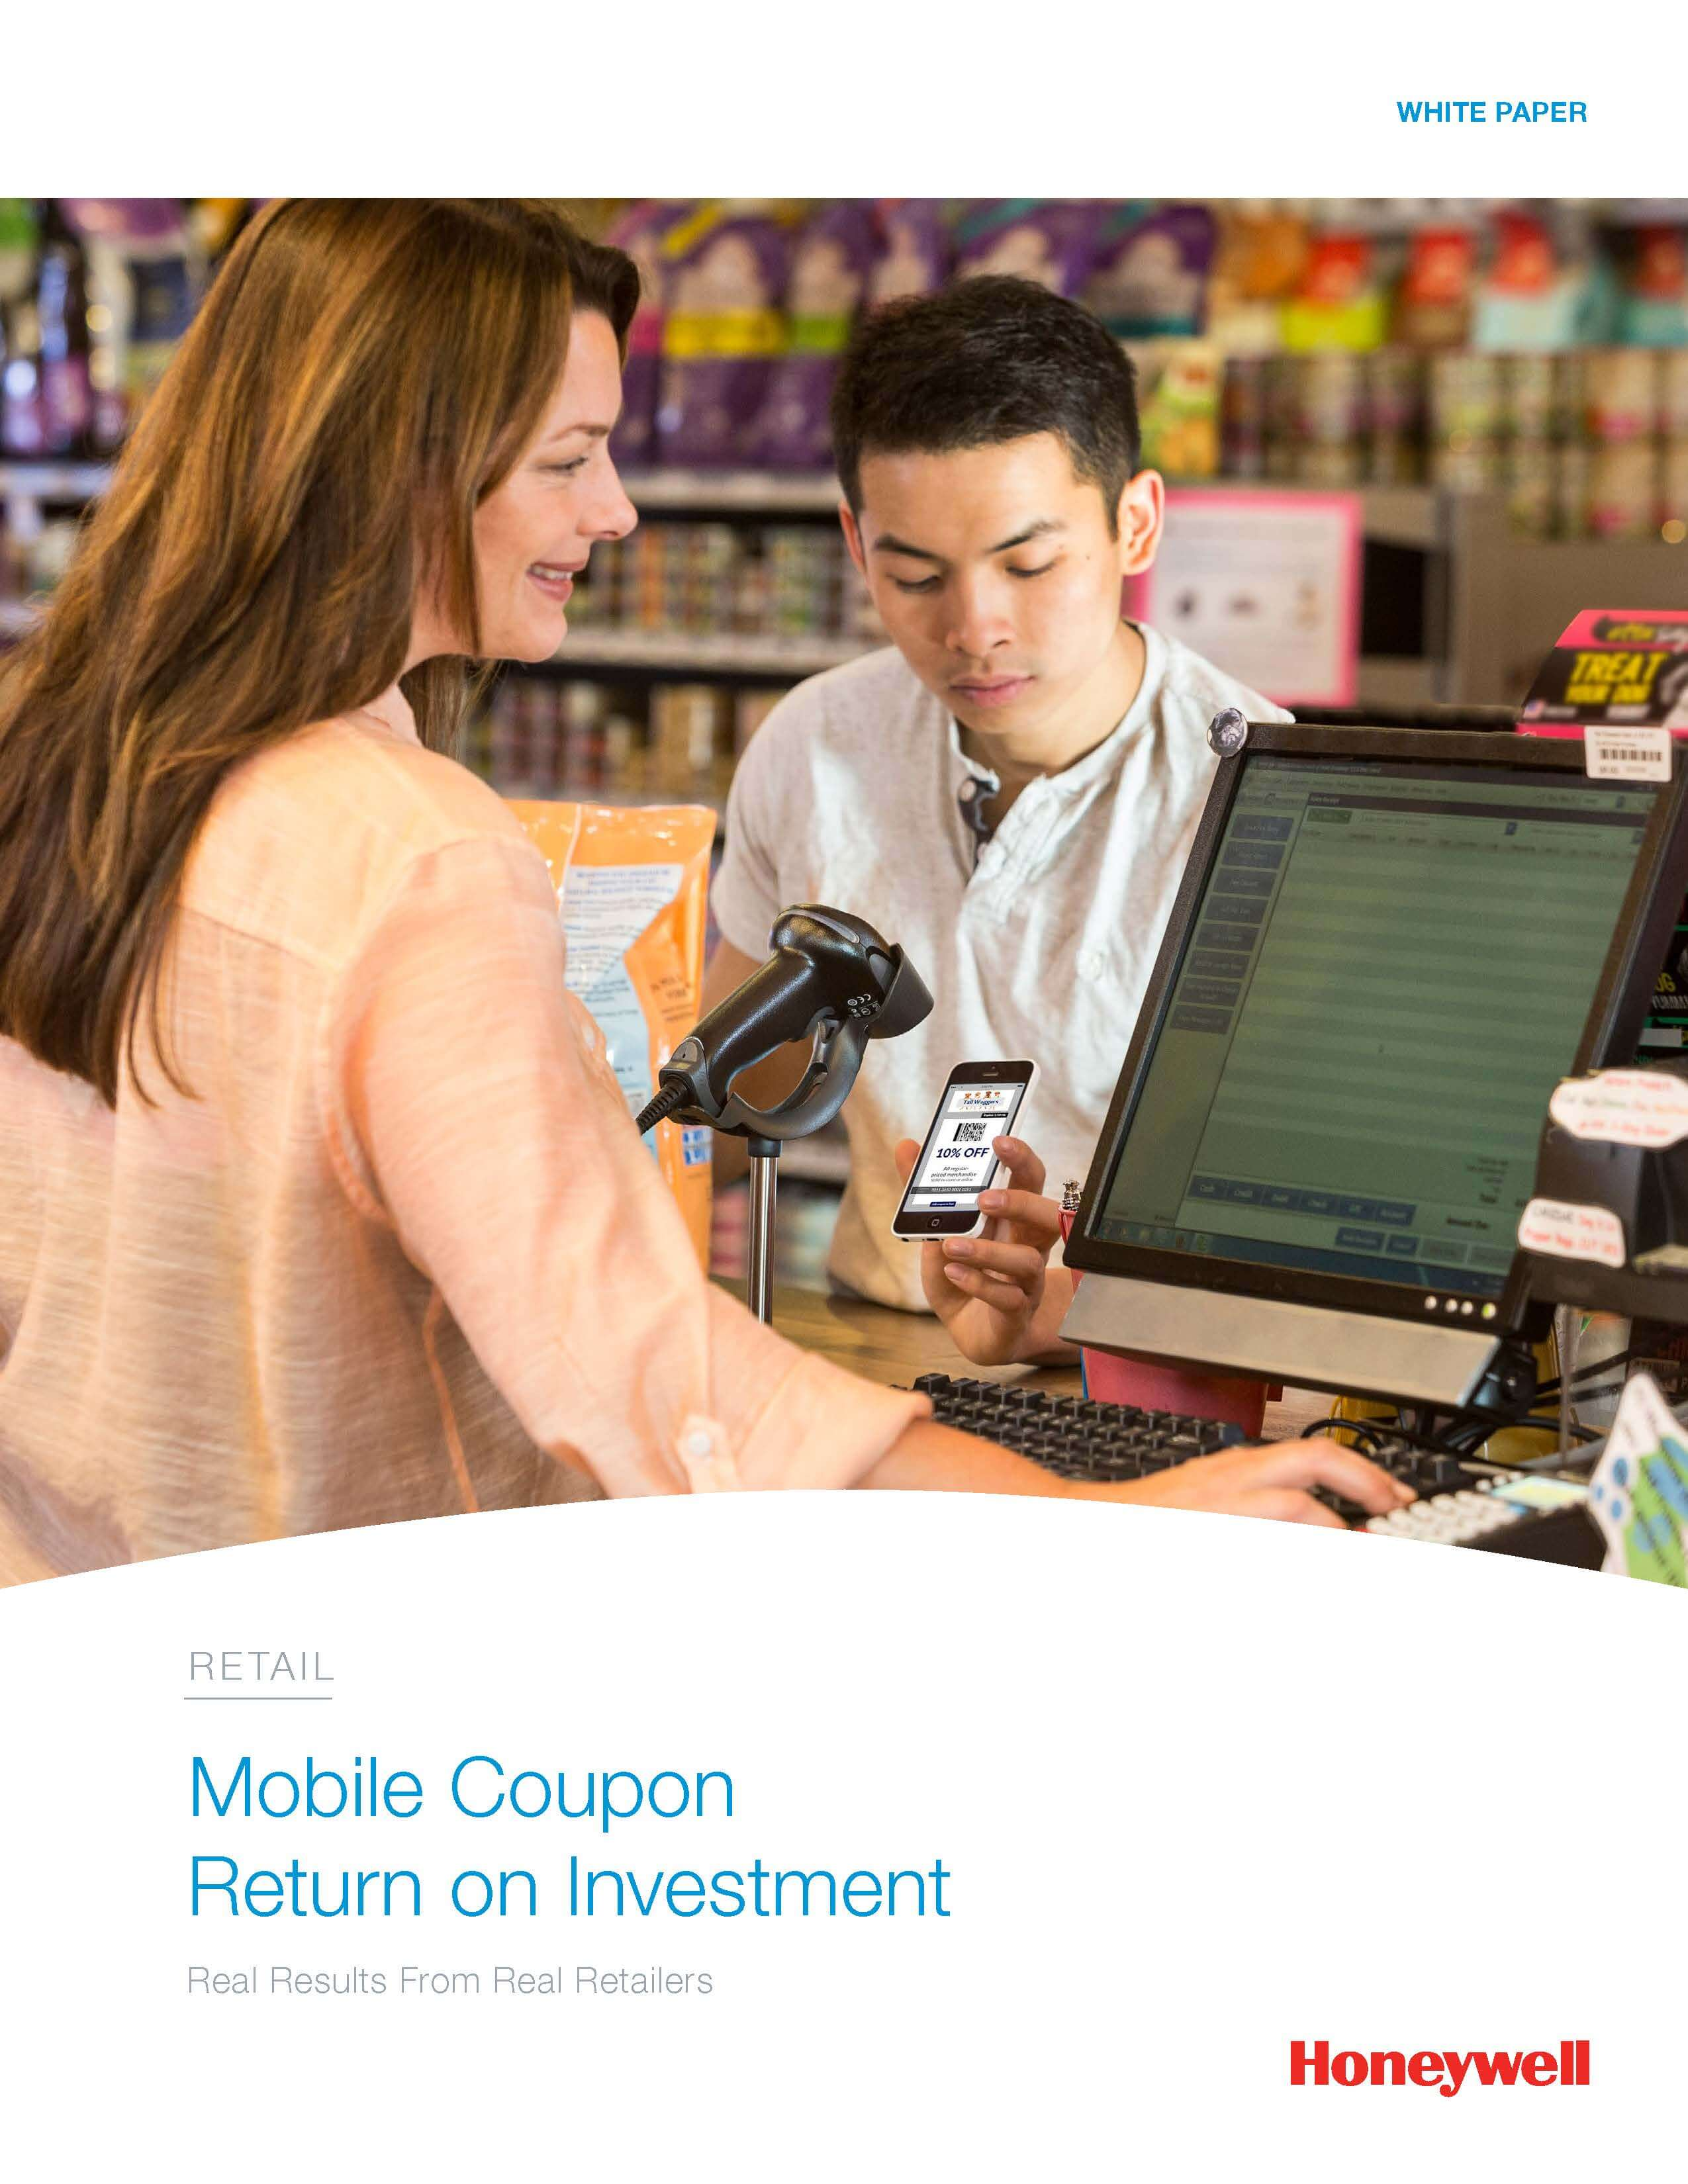 Mobile Coupon Return on Investment